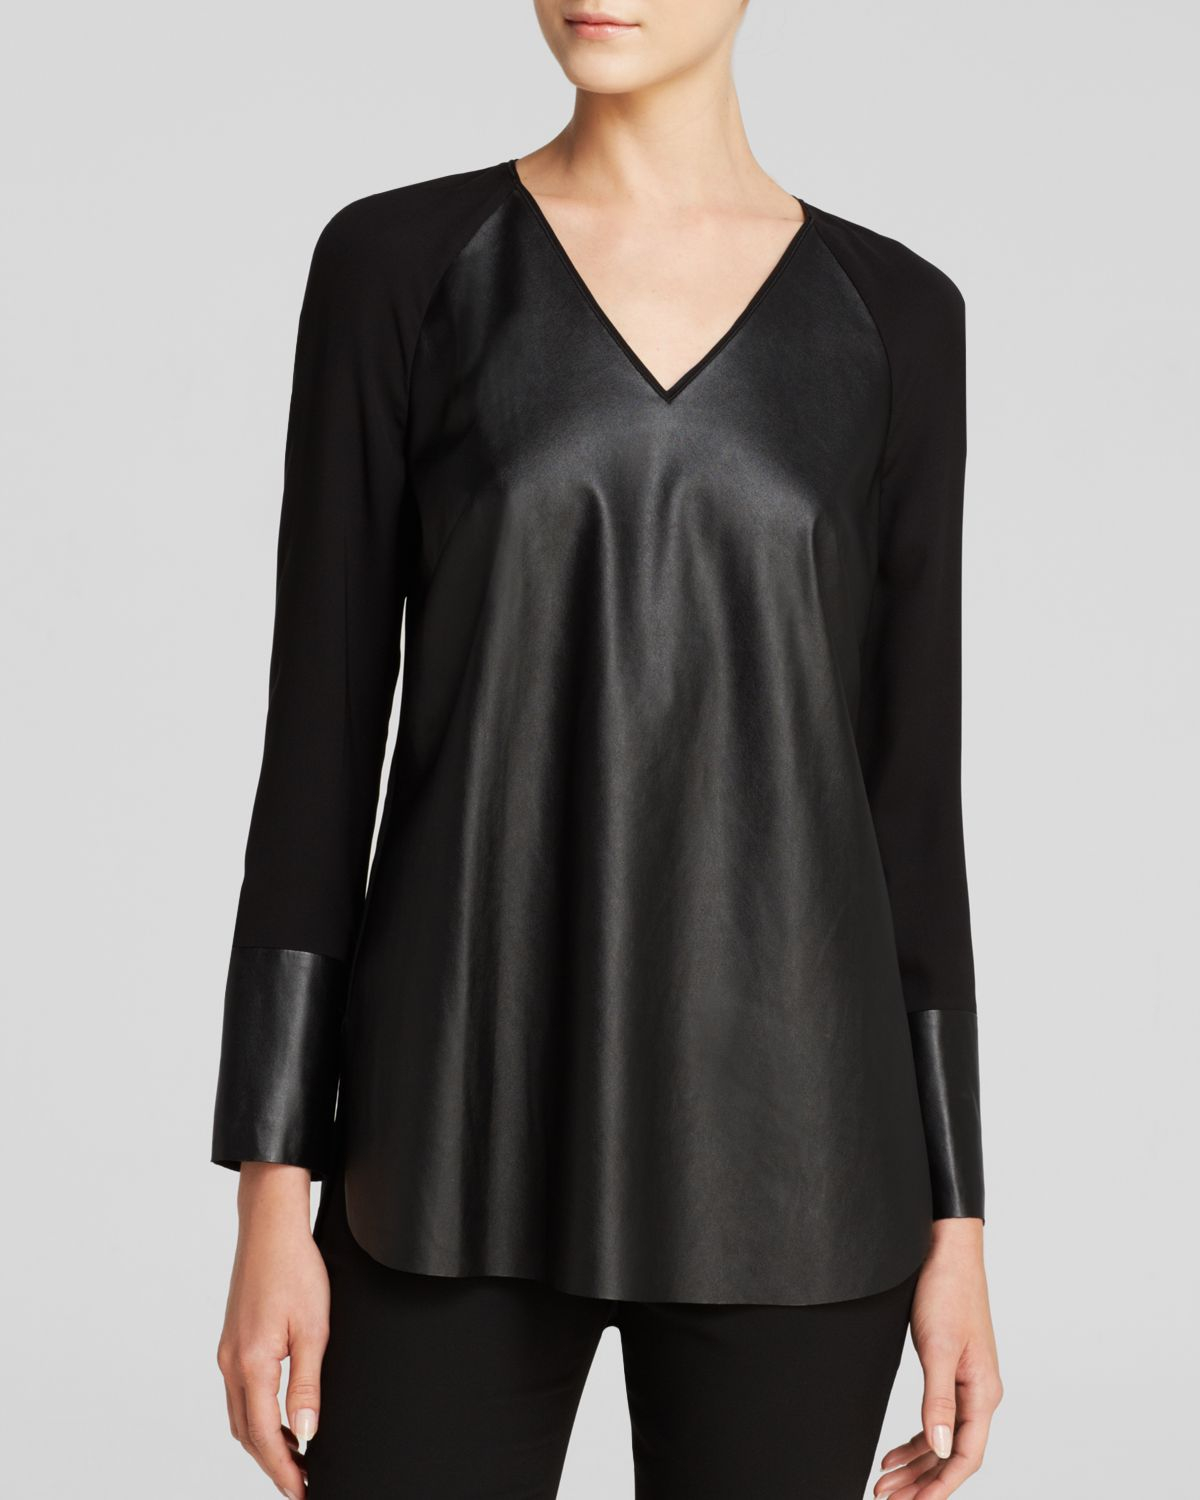 148 Best Images About Craft Ideas For Girls On Pinterest: Lafayette 148 New York Shae Faux Leather Top In Black